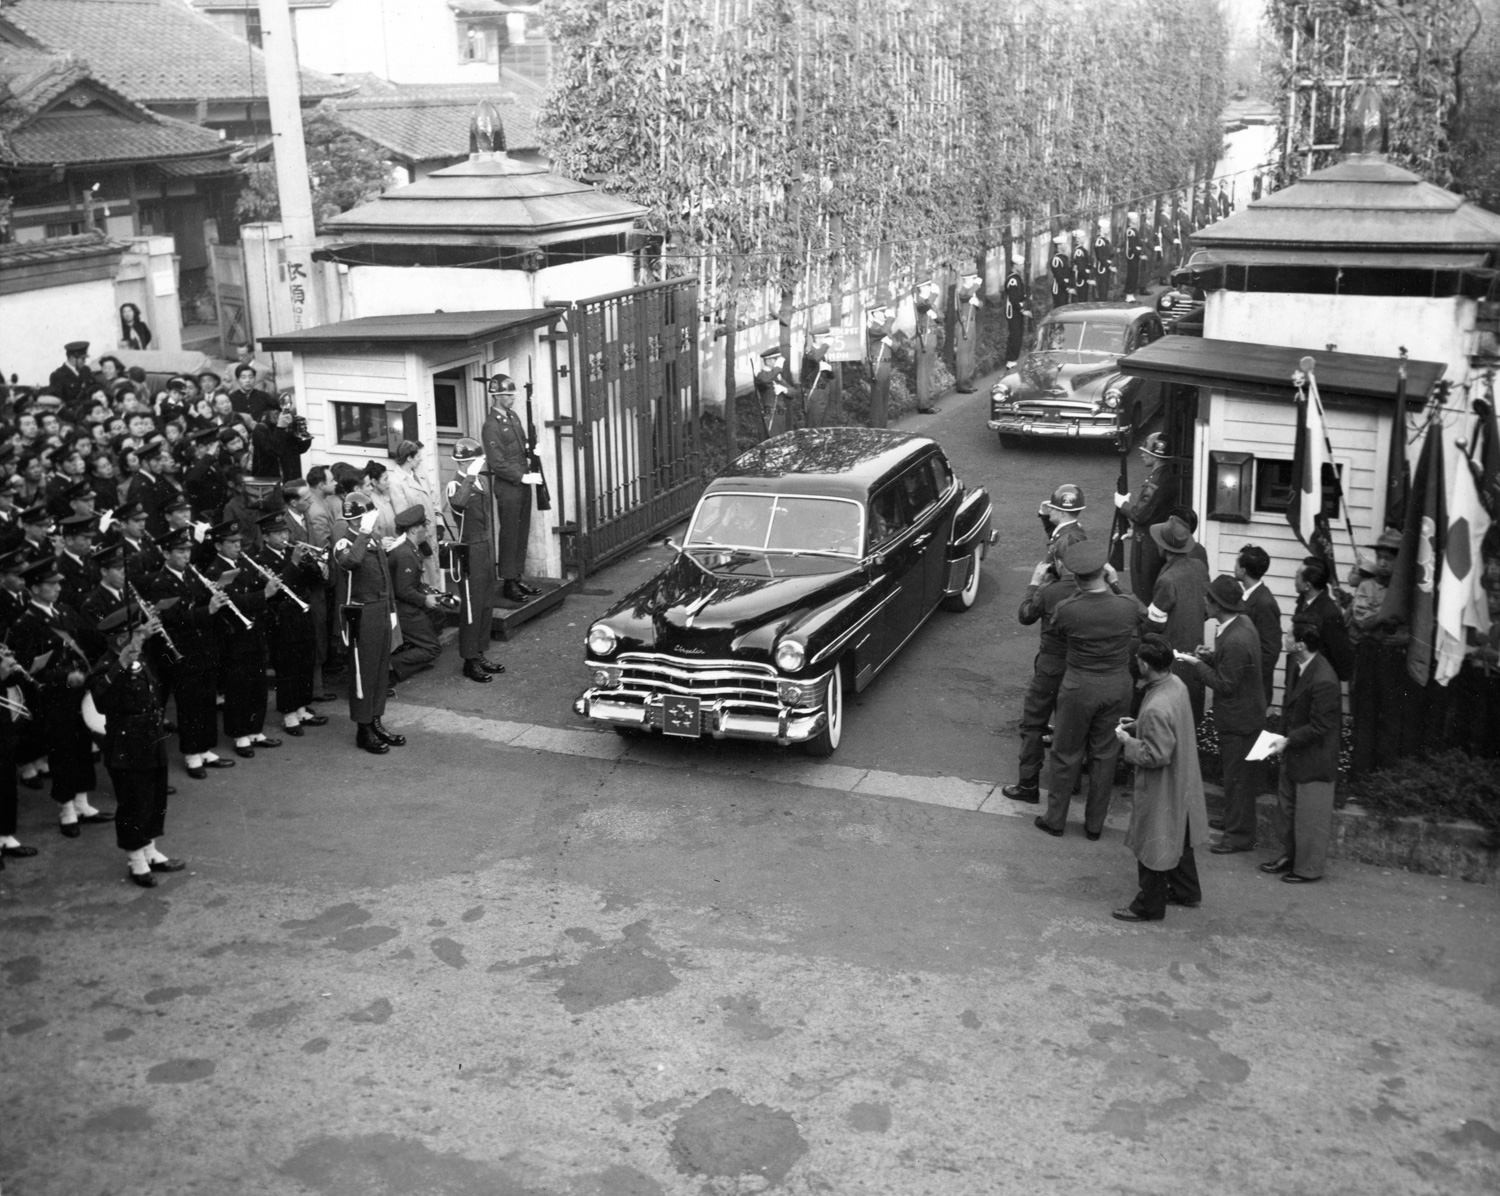 General MacArthur's 1950 Chrysler Crown Imperial limo served its country well